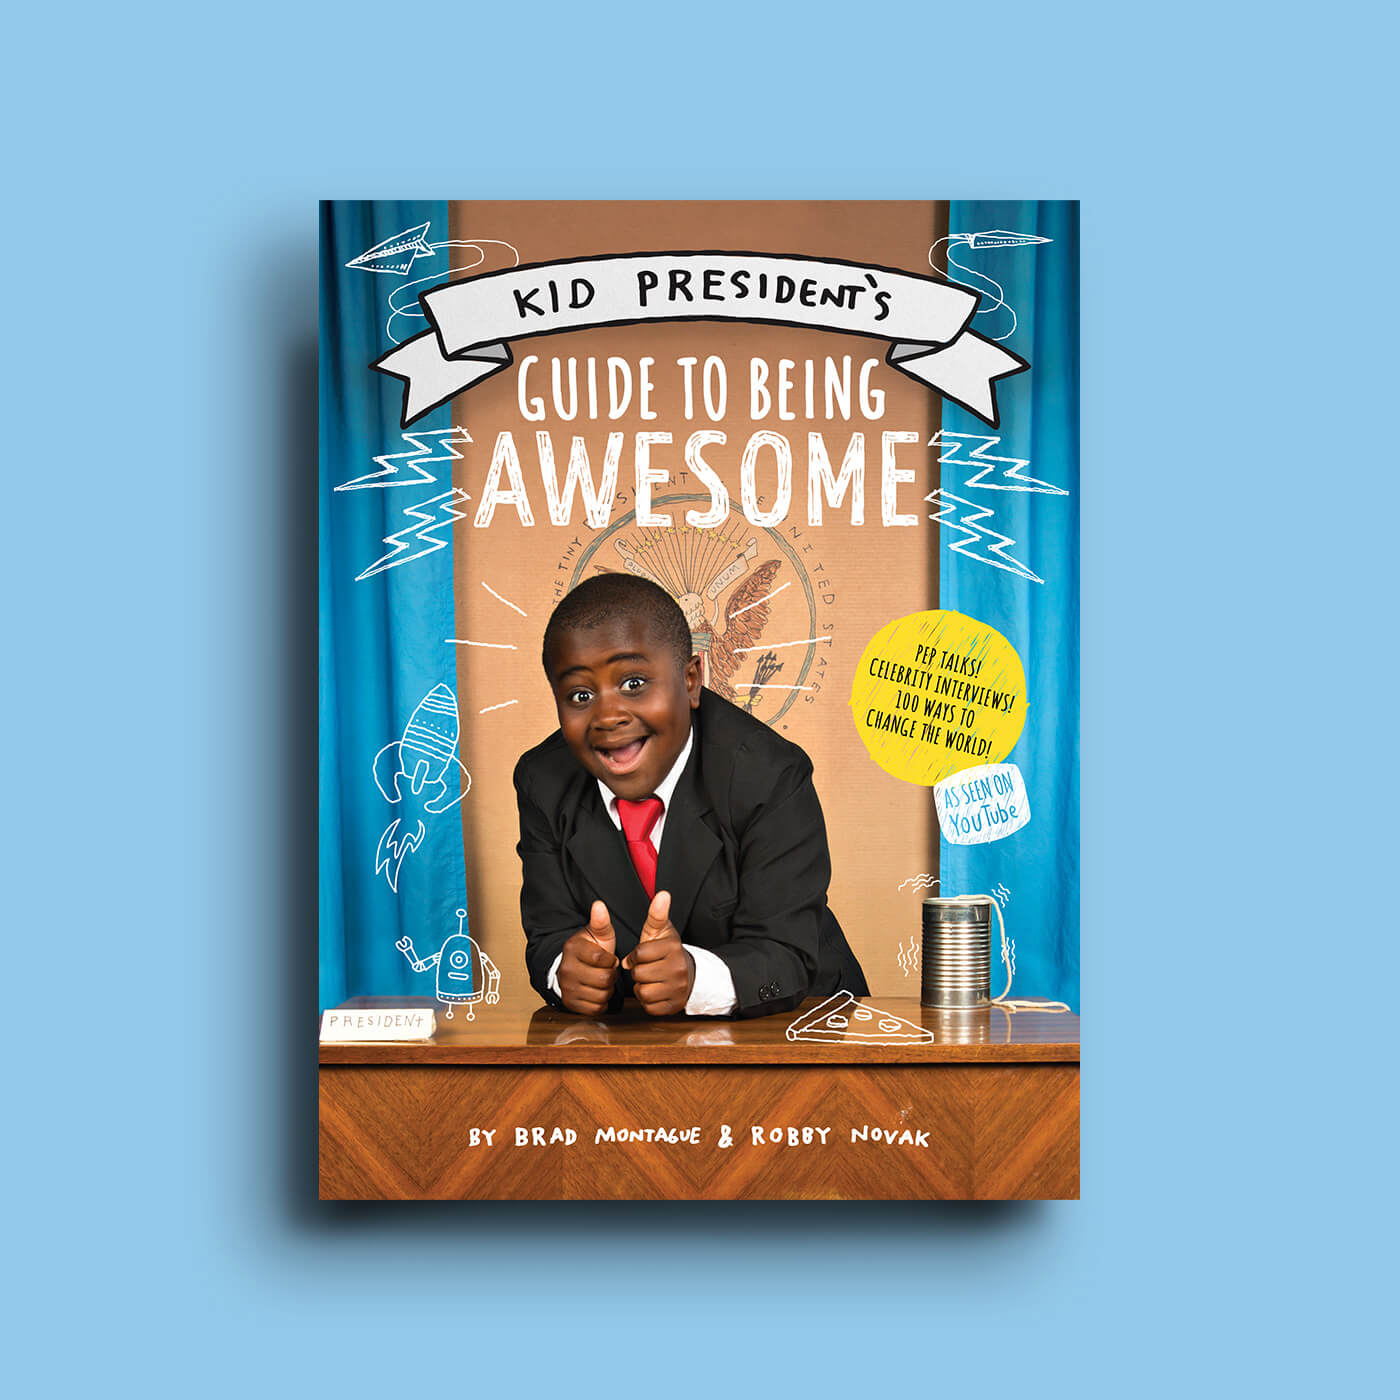 Kid President - The YouTube sensation brings his message of hope, and how kids can change the world, in this New York Times Best-Selling book.Design, Illustration